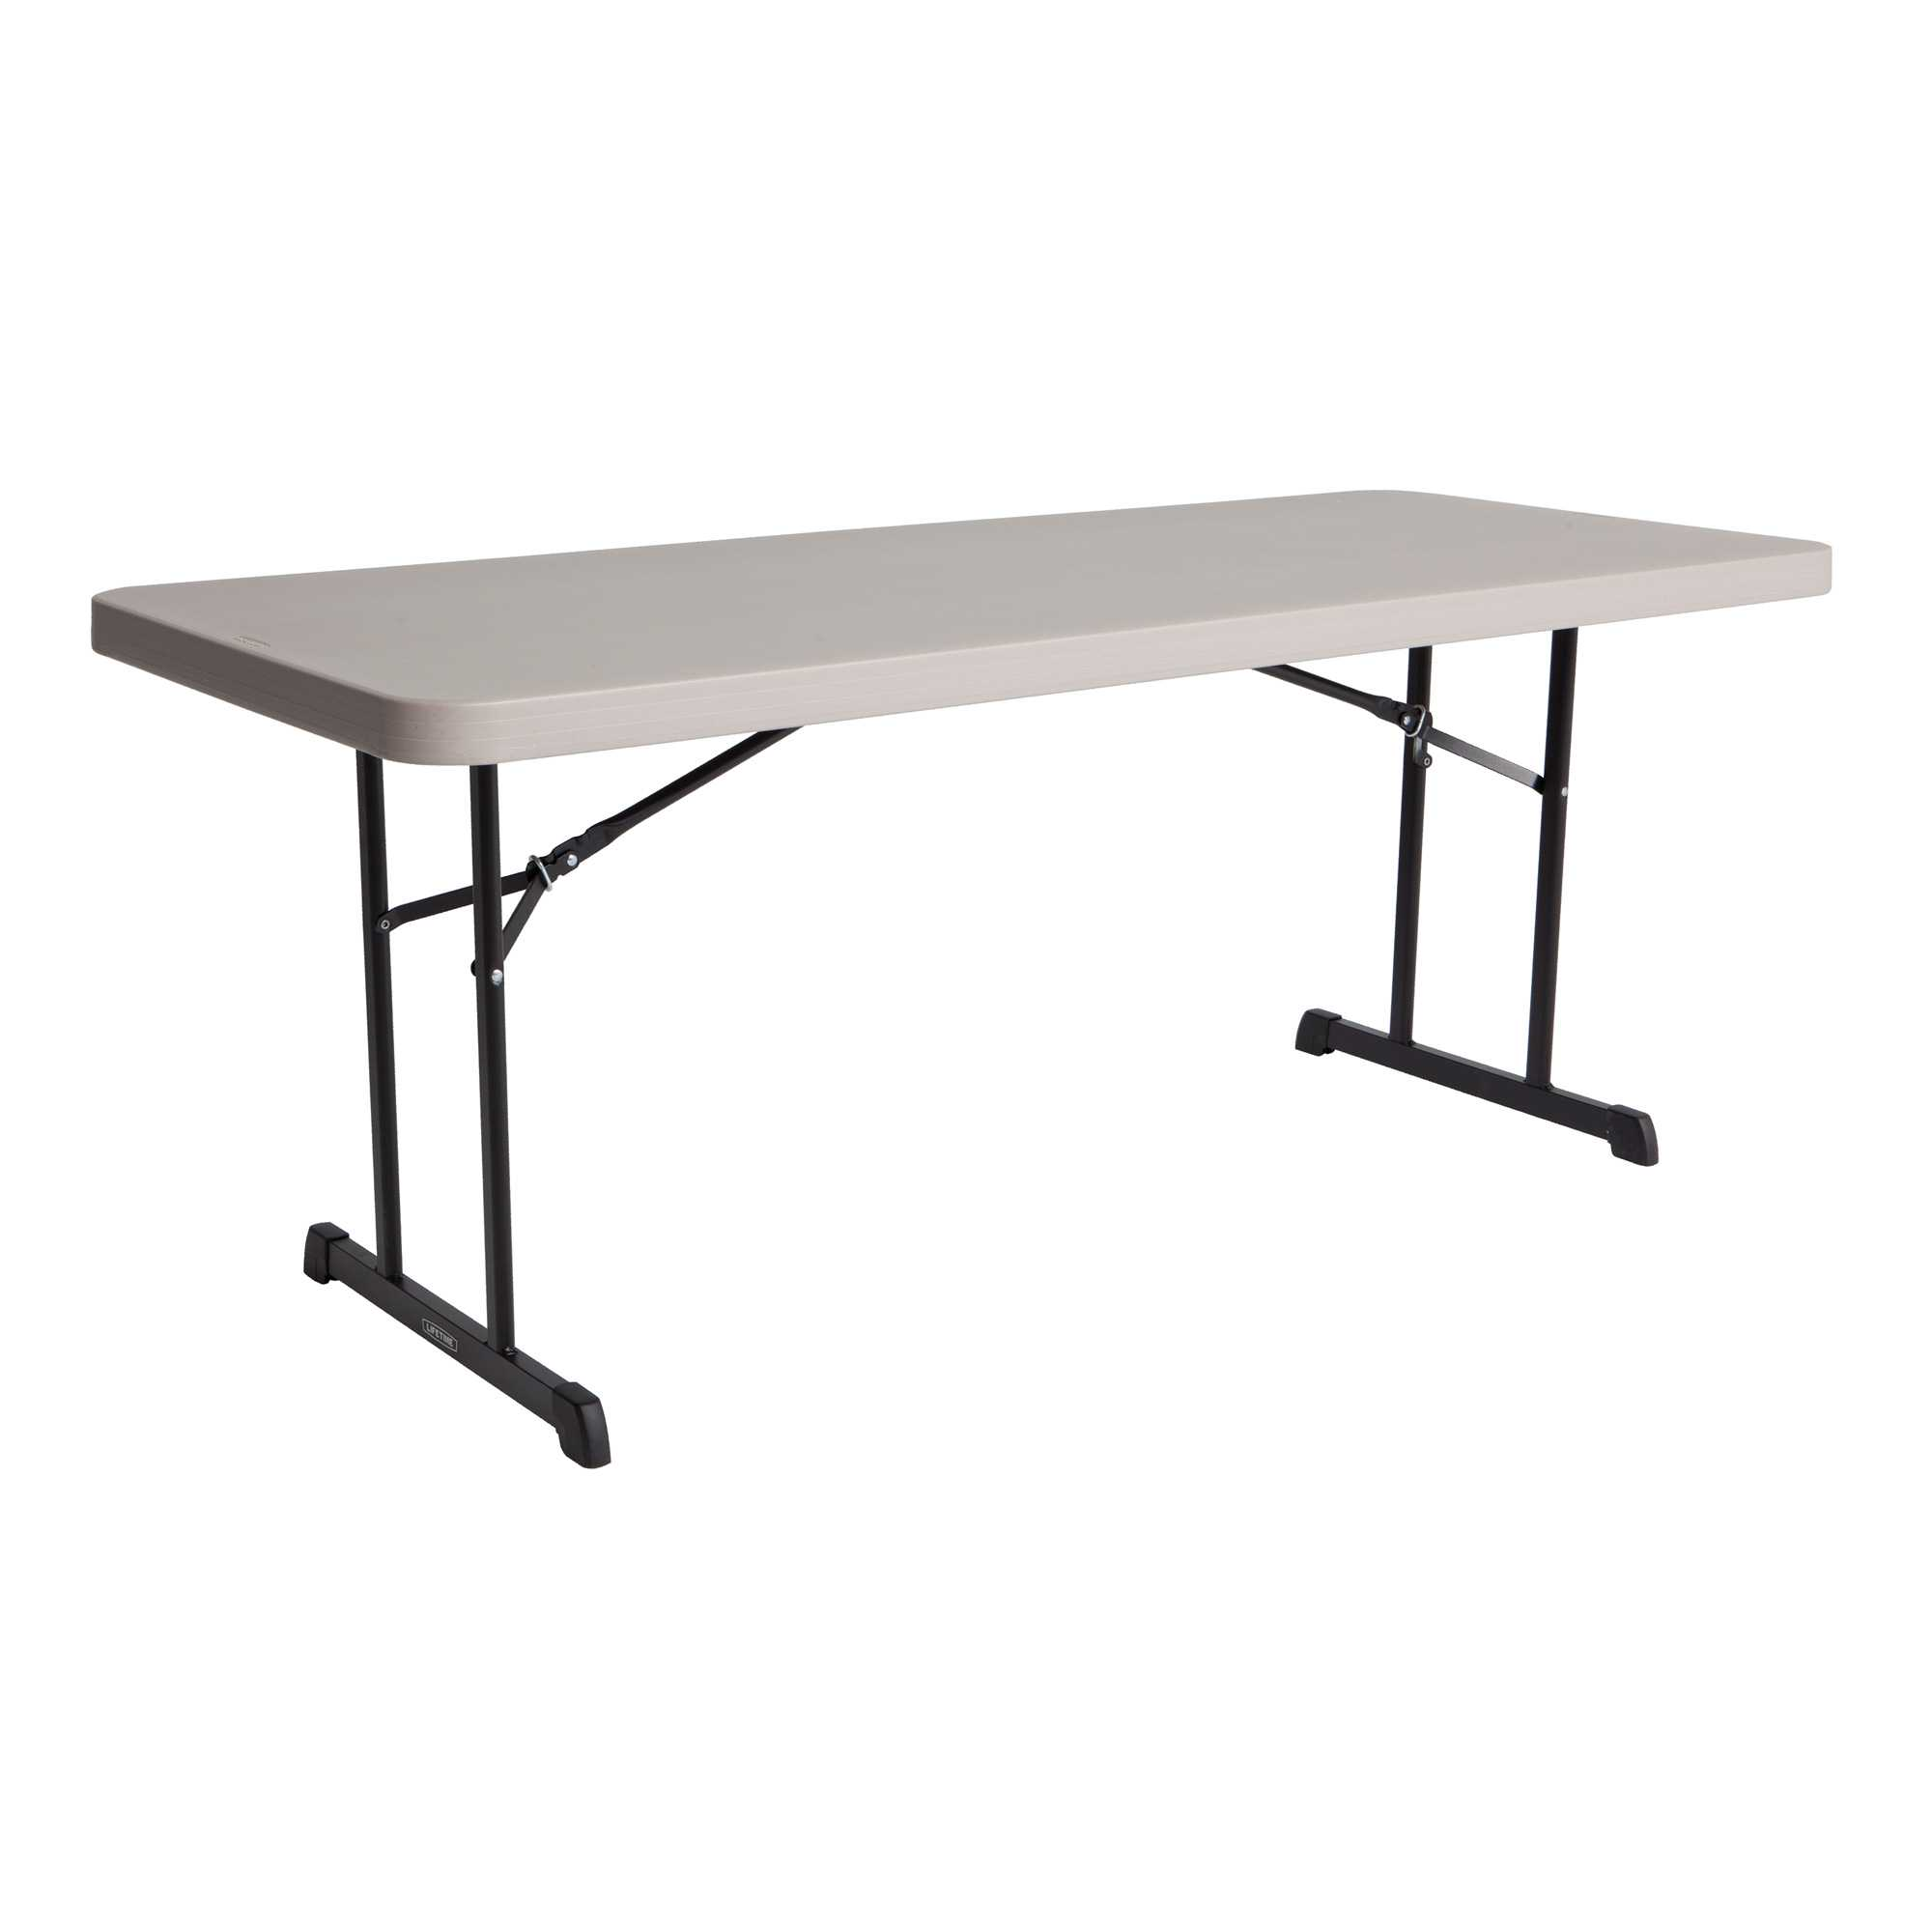 Lifetime 6-Foot Folding Table (Professional)